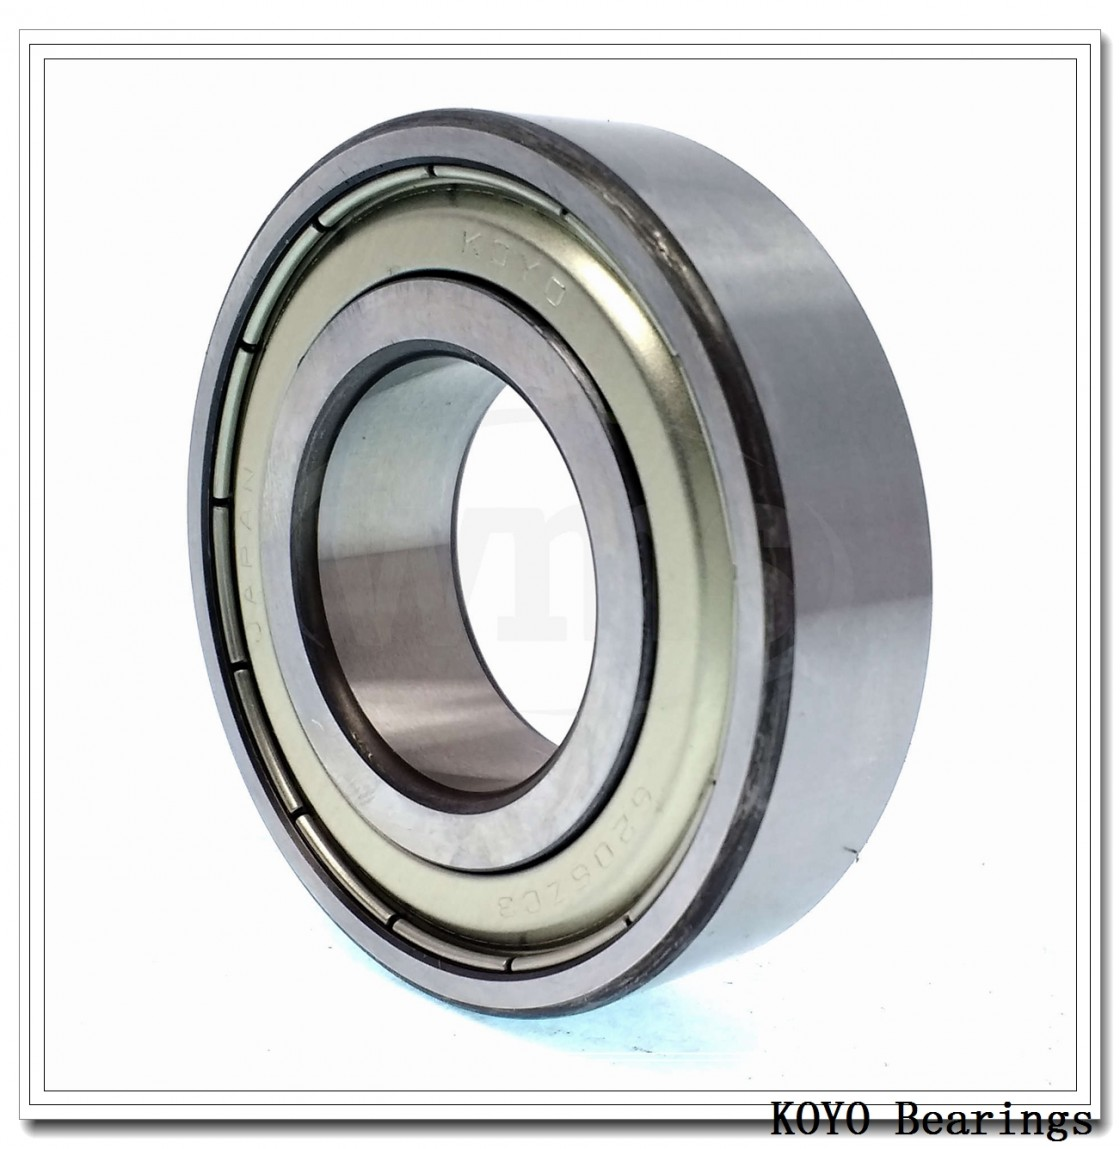 KOYO 83A551B4CS27 angular contact ball bearings